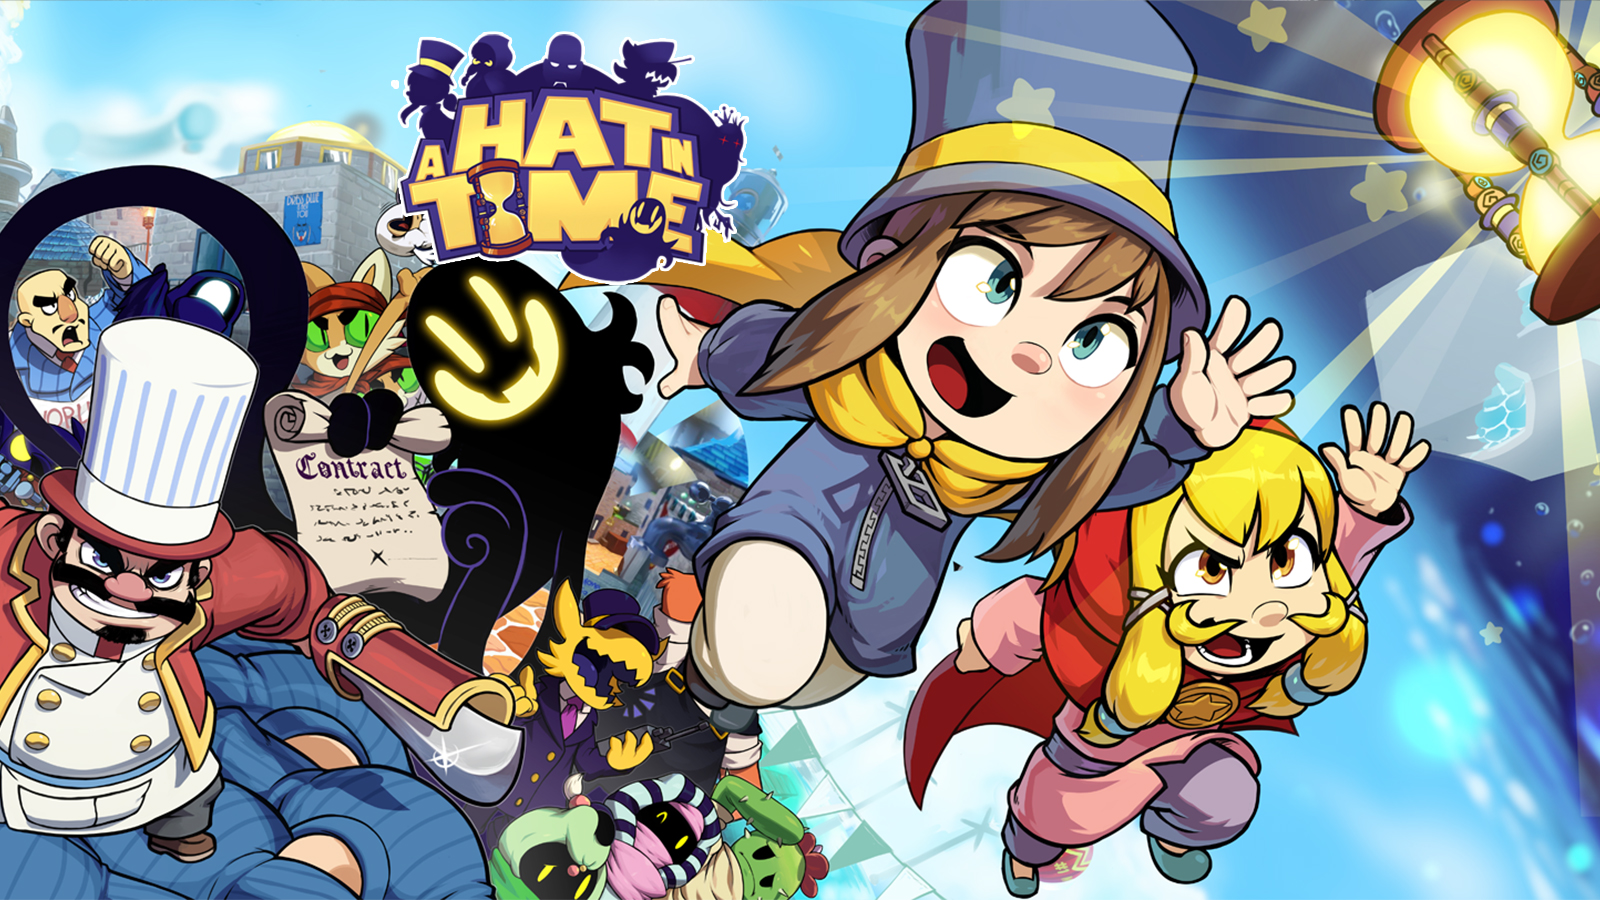 a hat in time dlc ps4